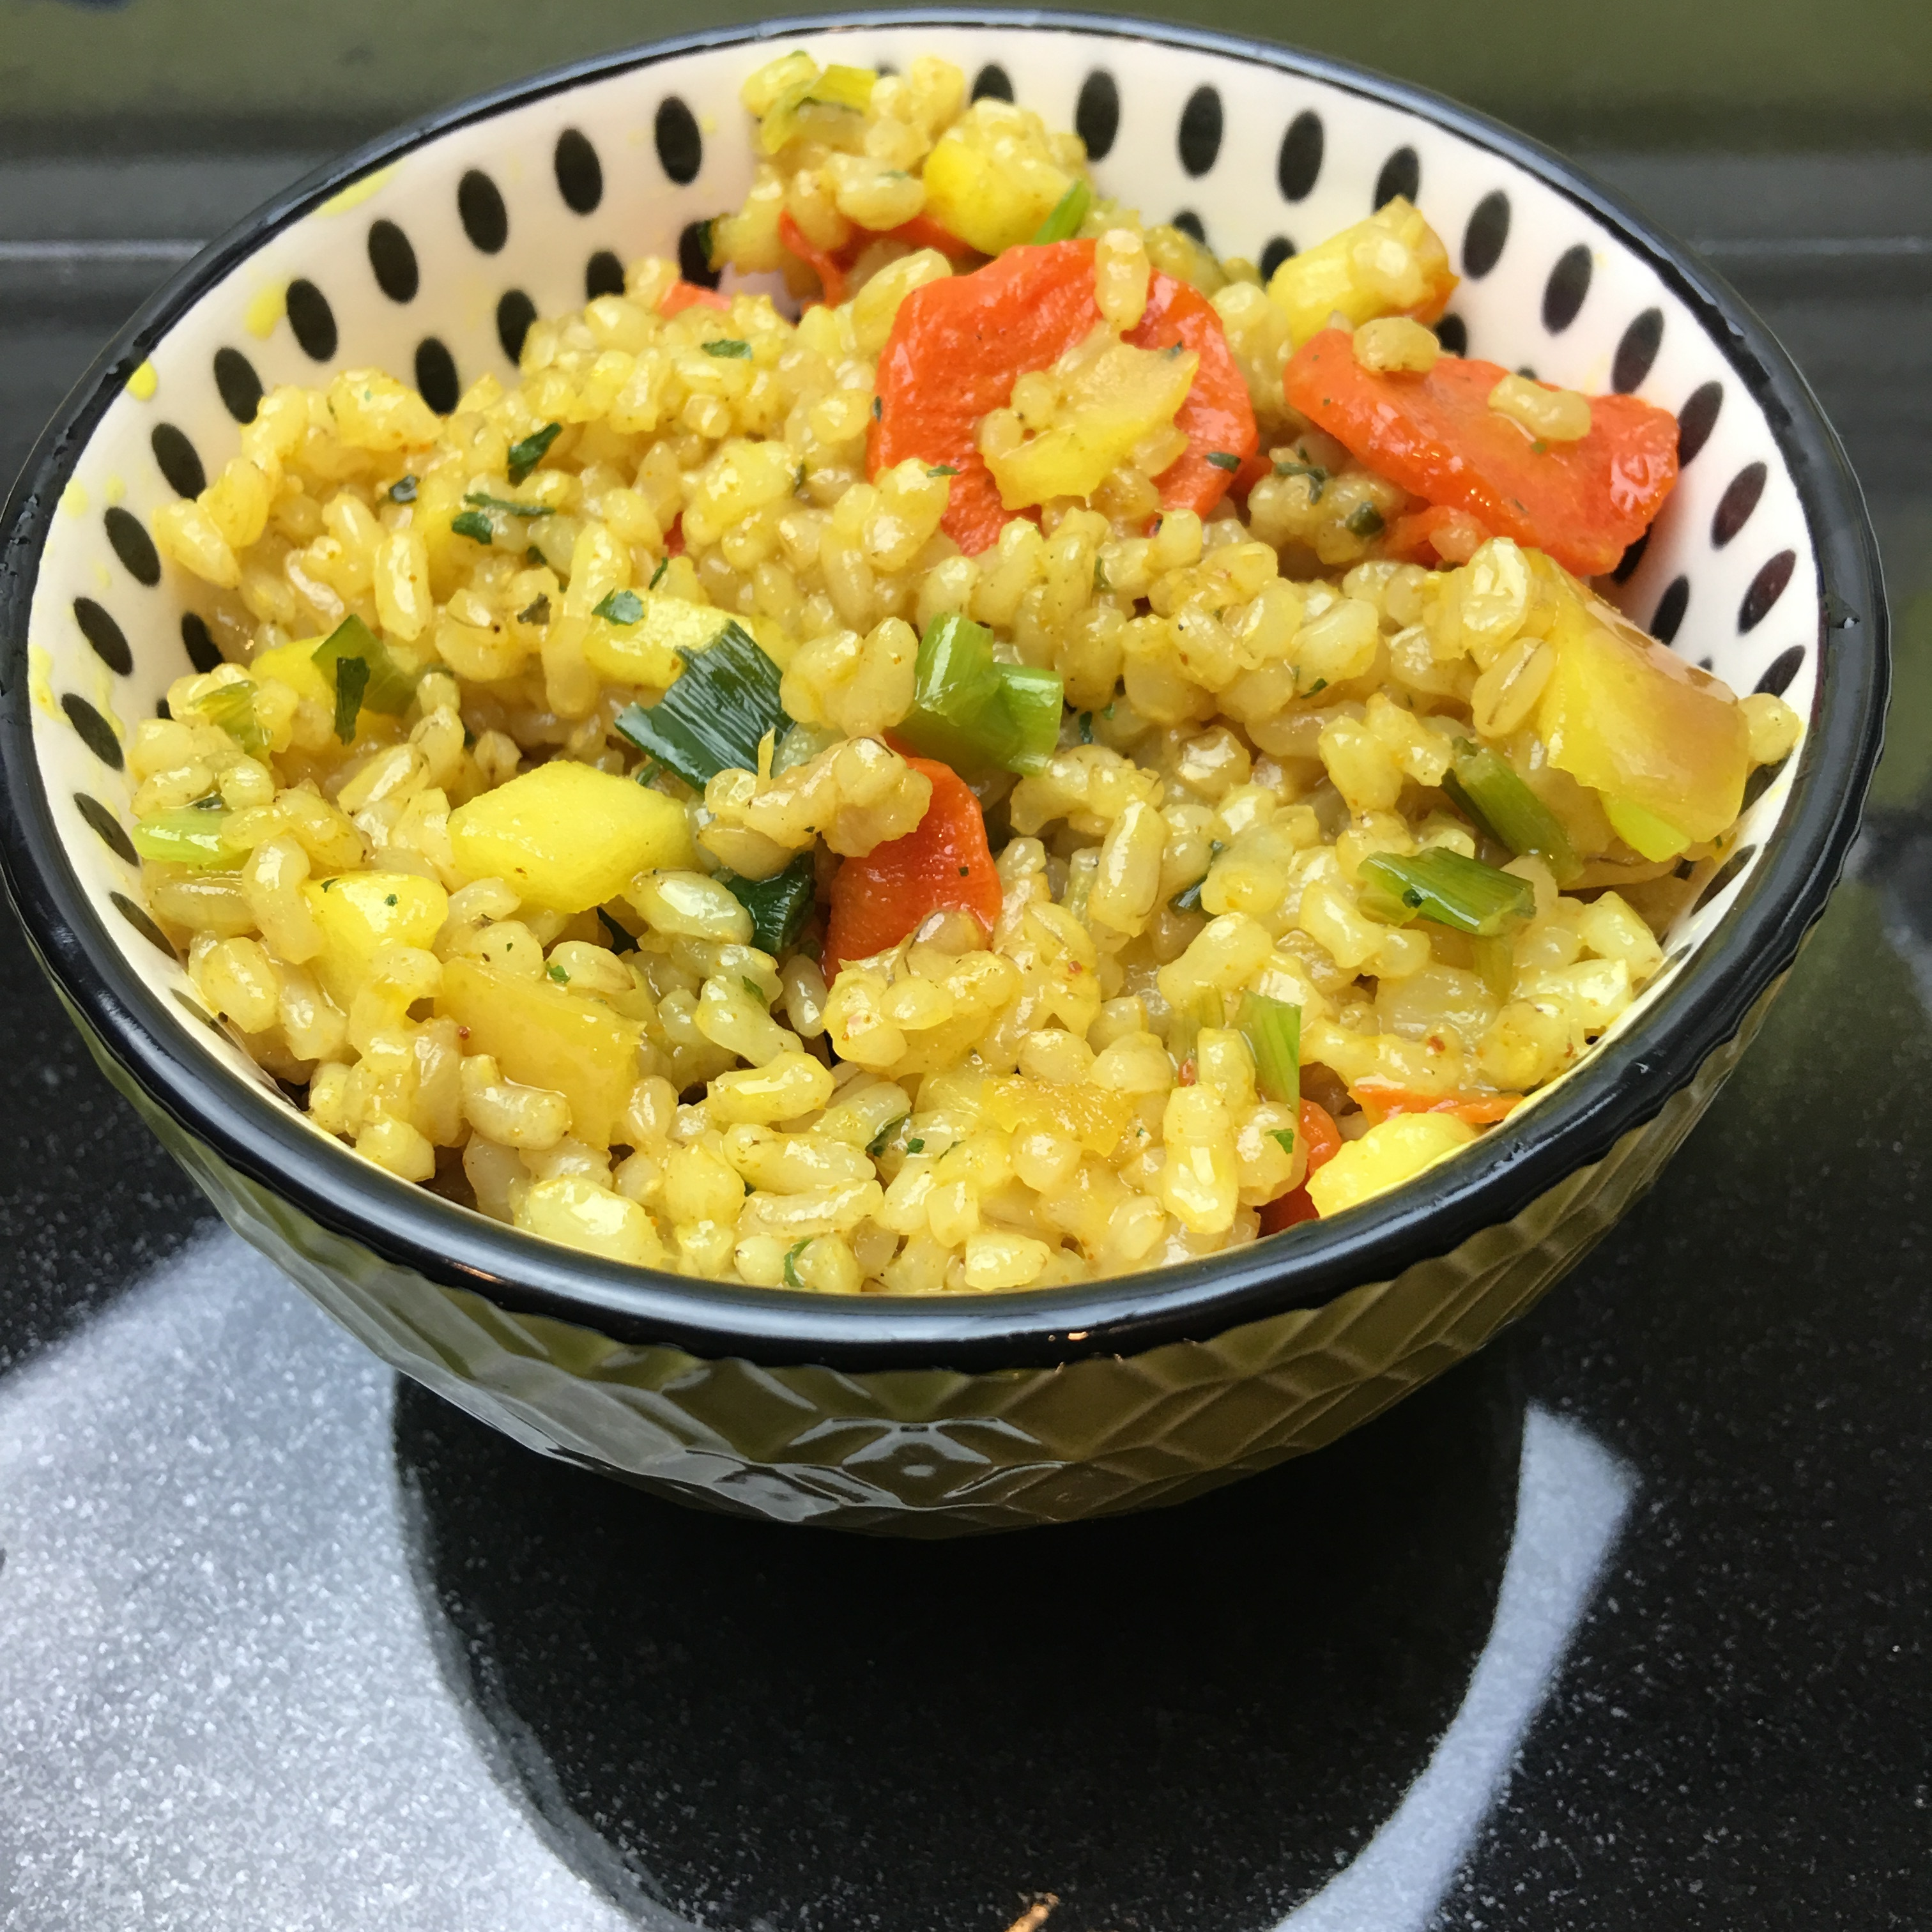 Allergy Free, Vegan Curried Fried Rice by The Allergy Chef